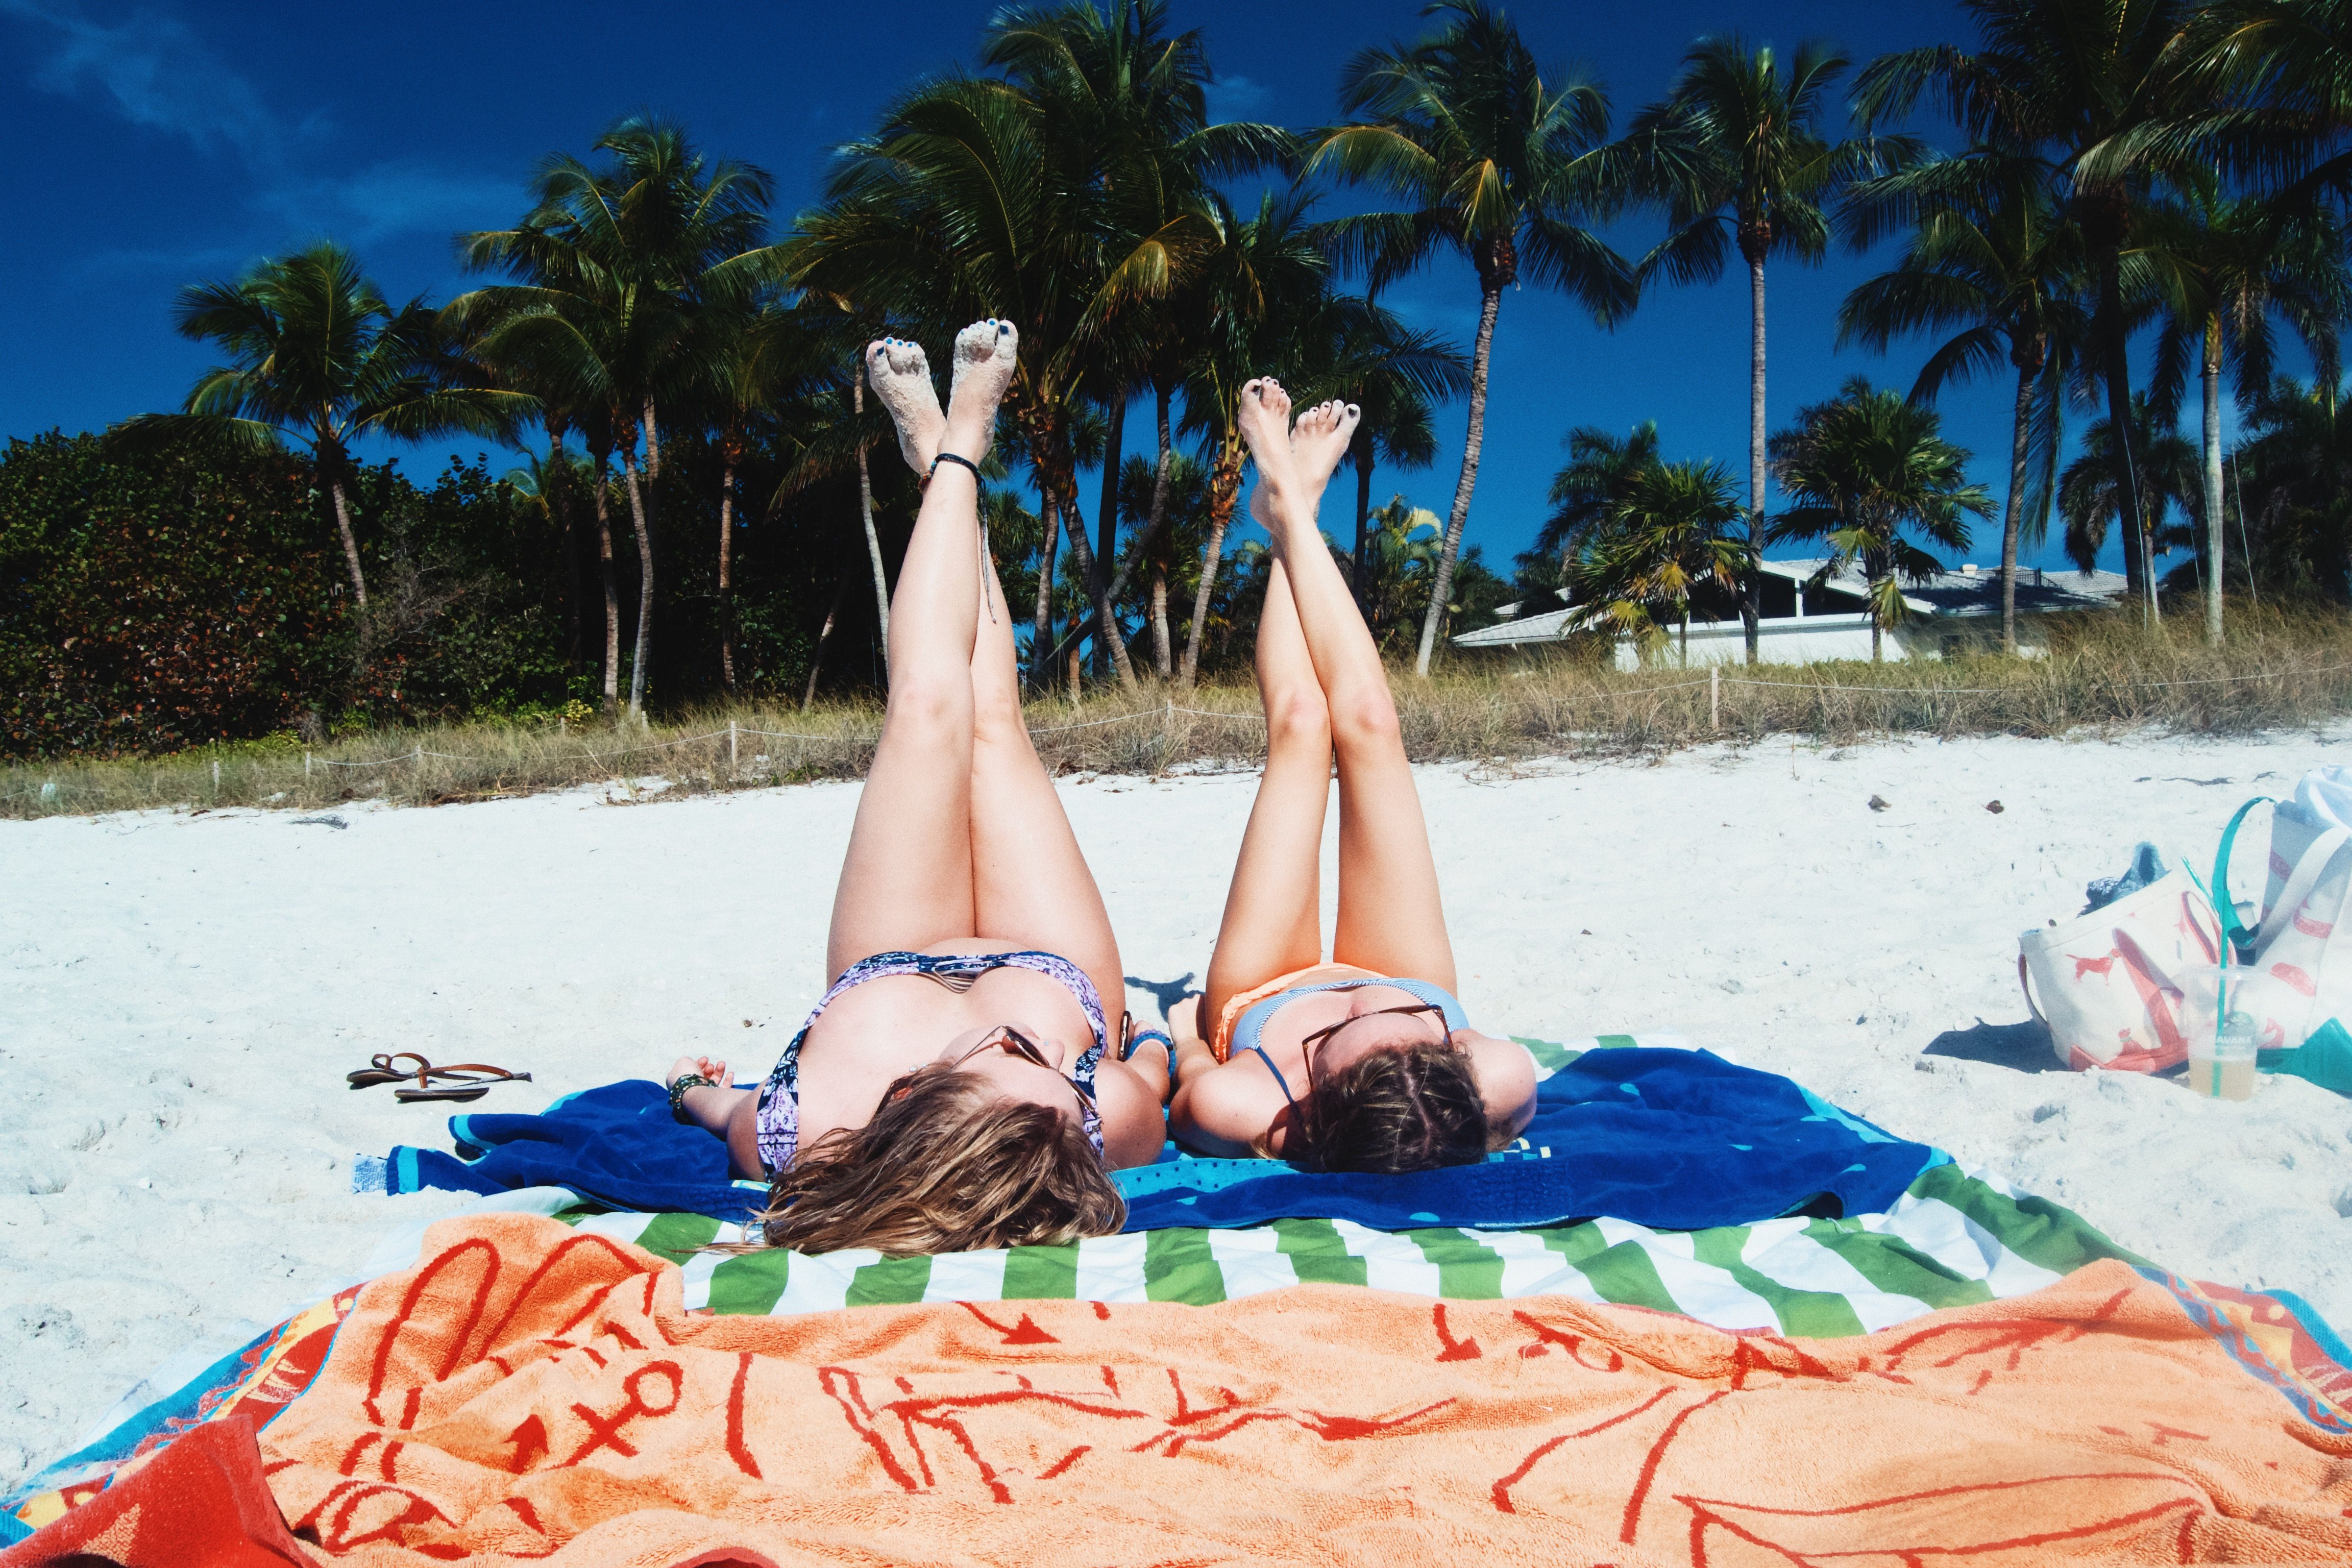 Friend beach photos. Traveling alone with a friend. Used ...